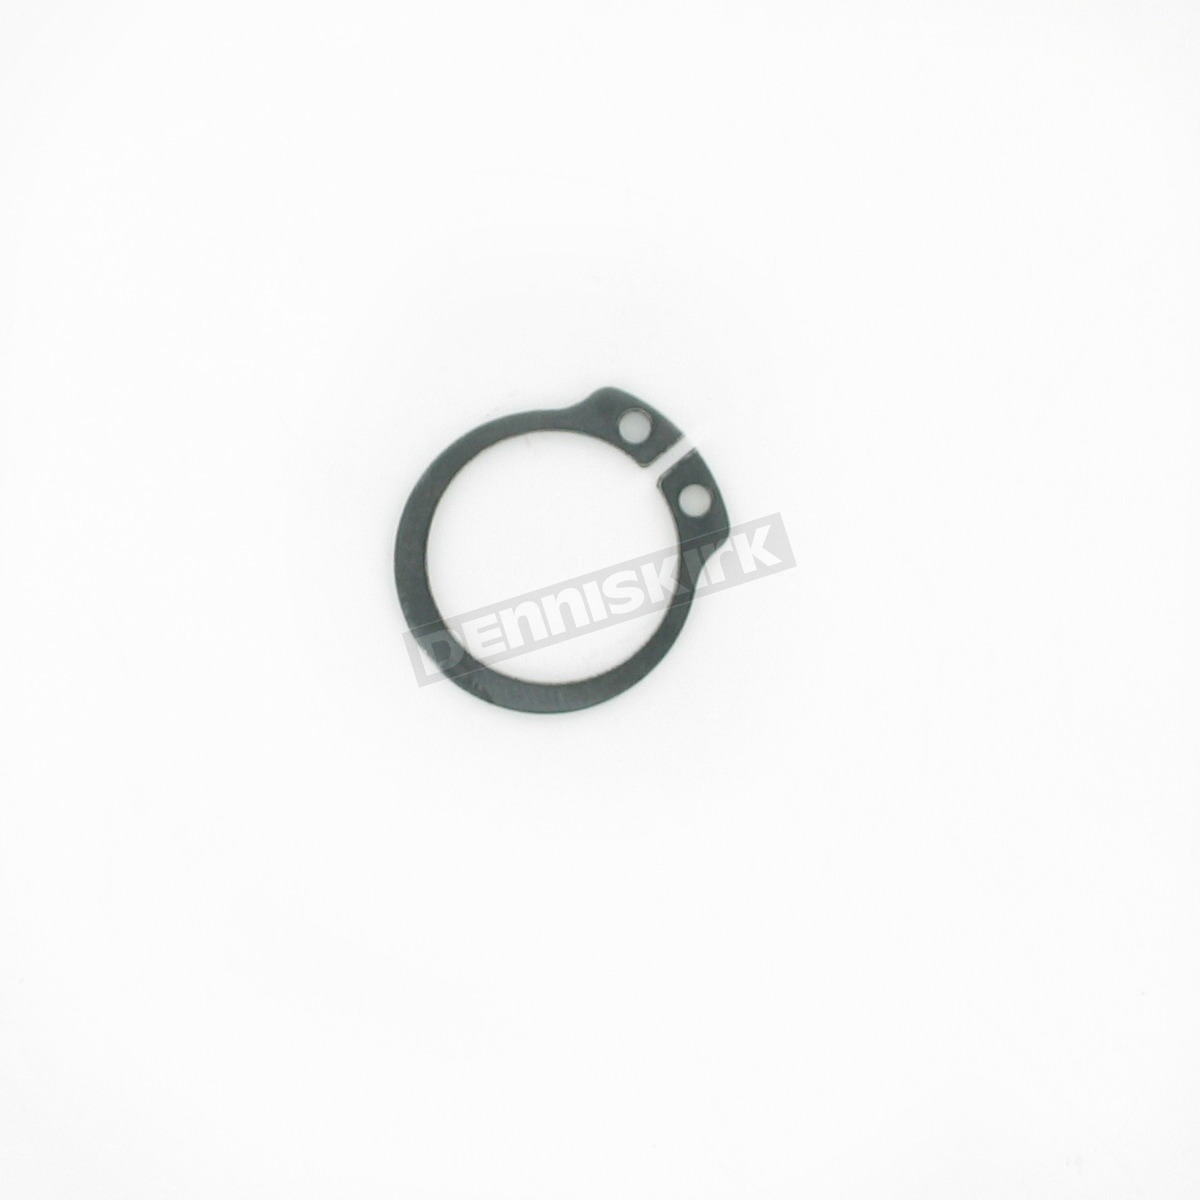 5//16 Grooveless External Snap Ring Spring Steel SHF-031 Duty Stamped USA Std Pkg of 415